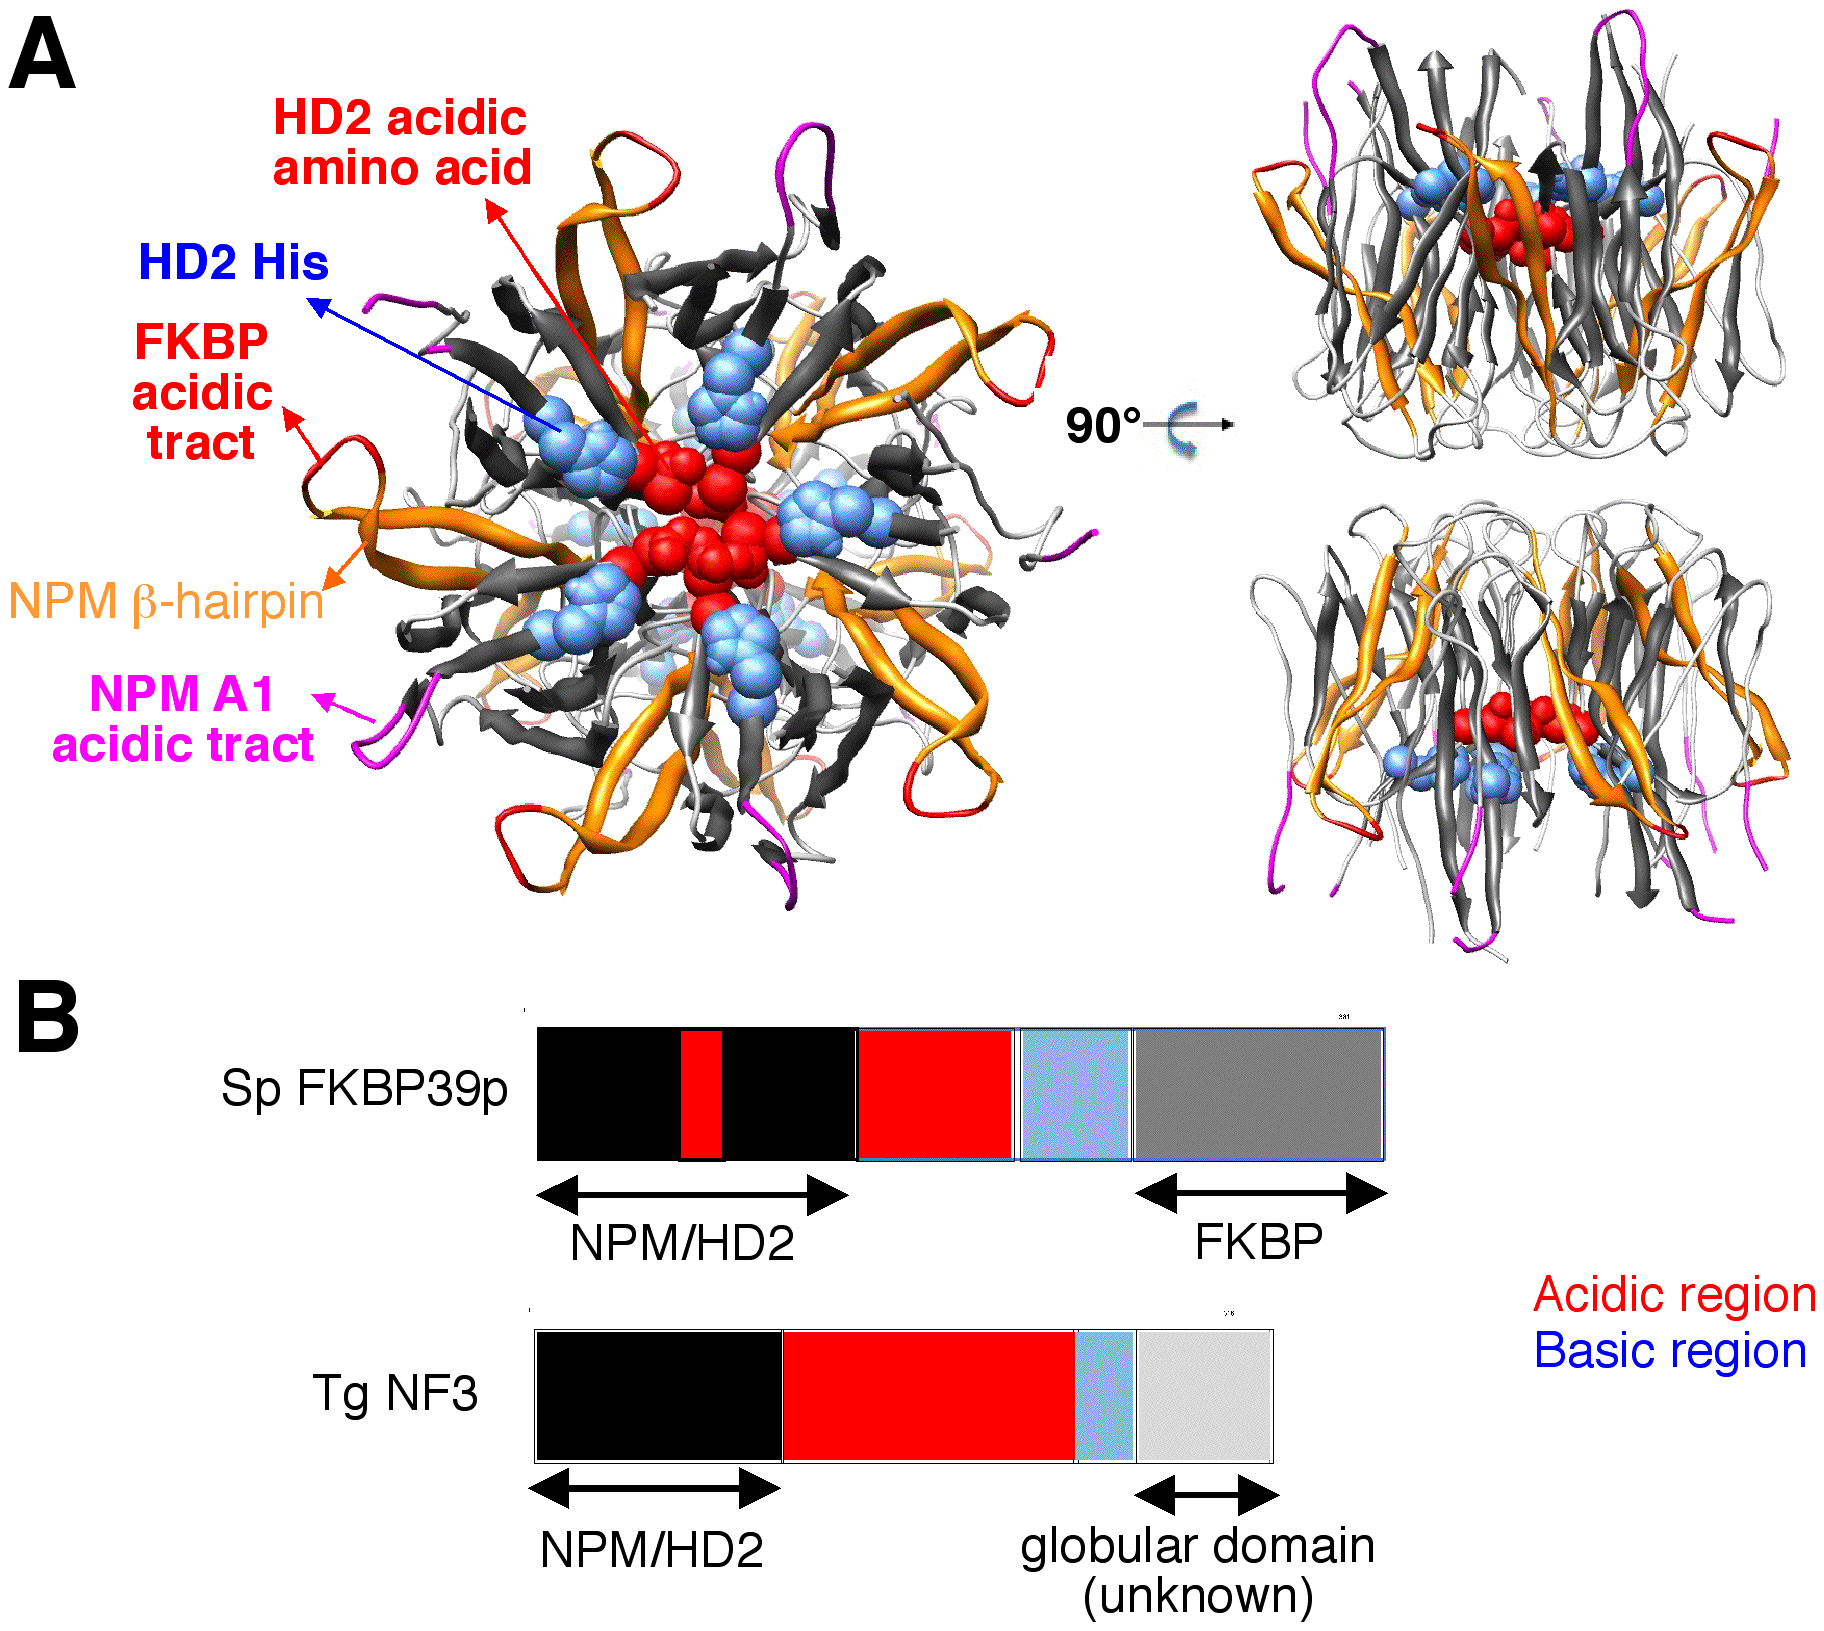 3D-structure of the NPM Np core domain, highlighting the positions of hallmarks of the NPM and HD2/nuclear FKBP/TgNF3 families.